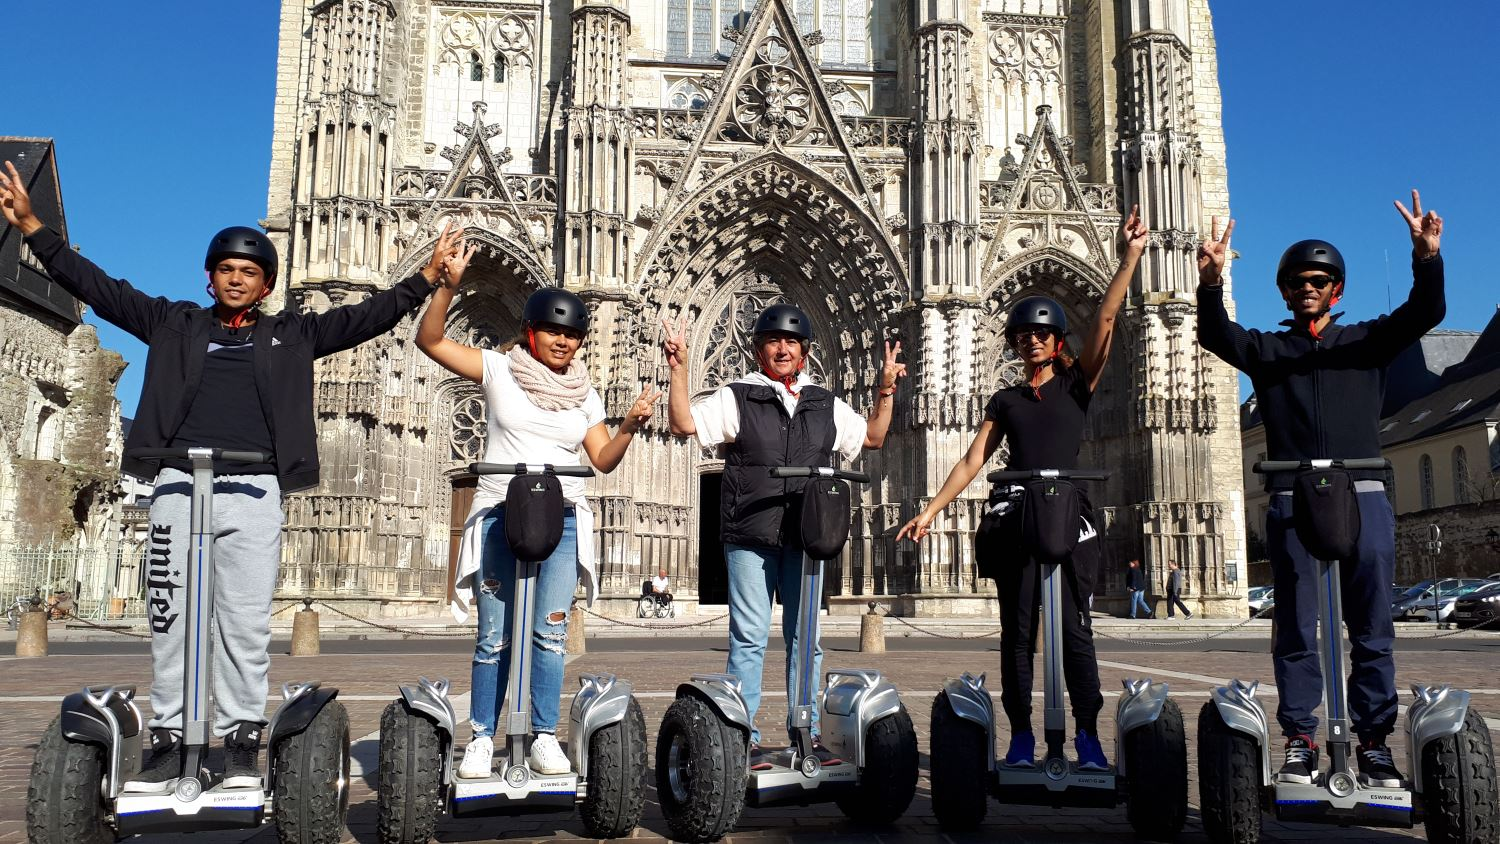 90 MINUTES TO VISIT TOURS BY SEGWAY FROM TOURS TOURIST OFFICE - EASTER SPECIAL OFFER